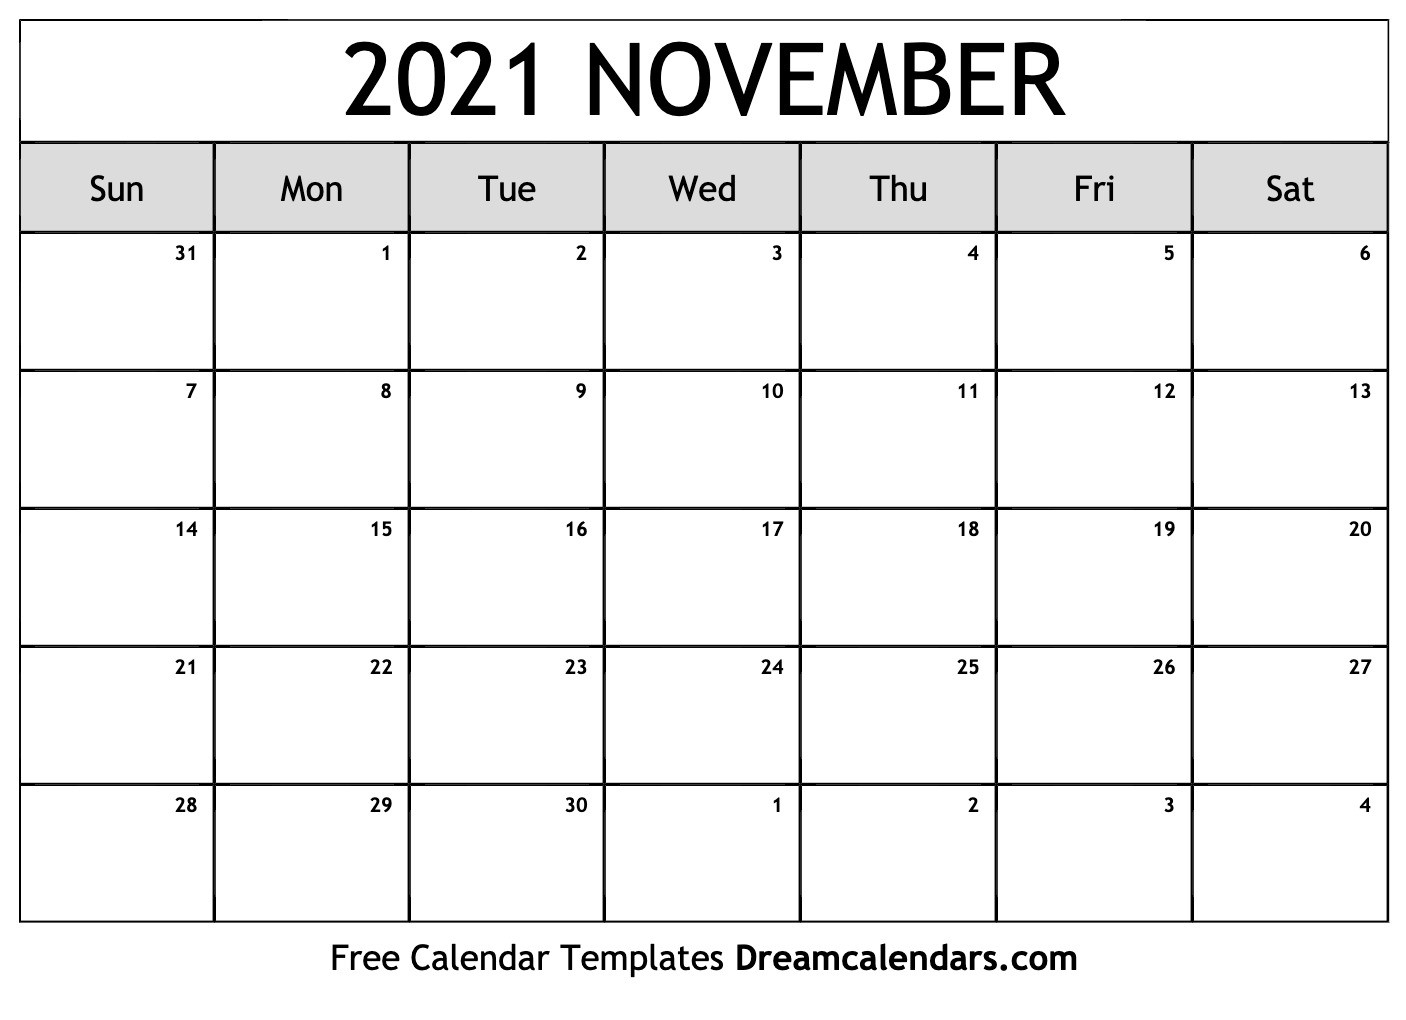 2021 Free Printable Calendars Without Downloading November